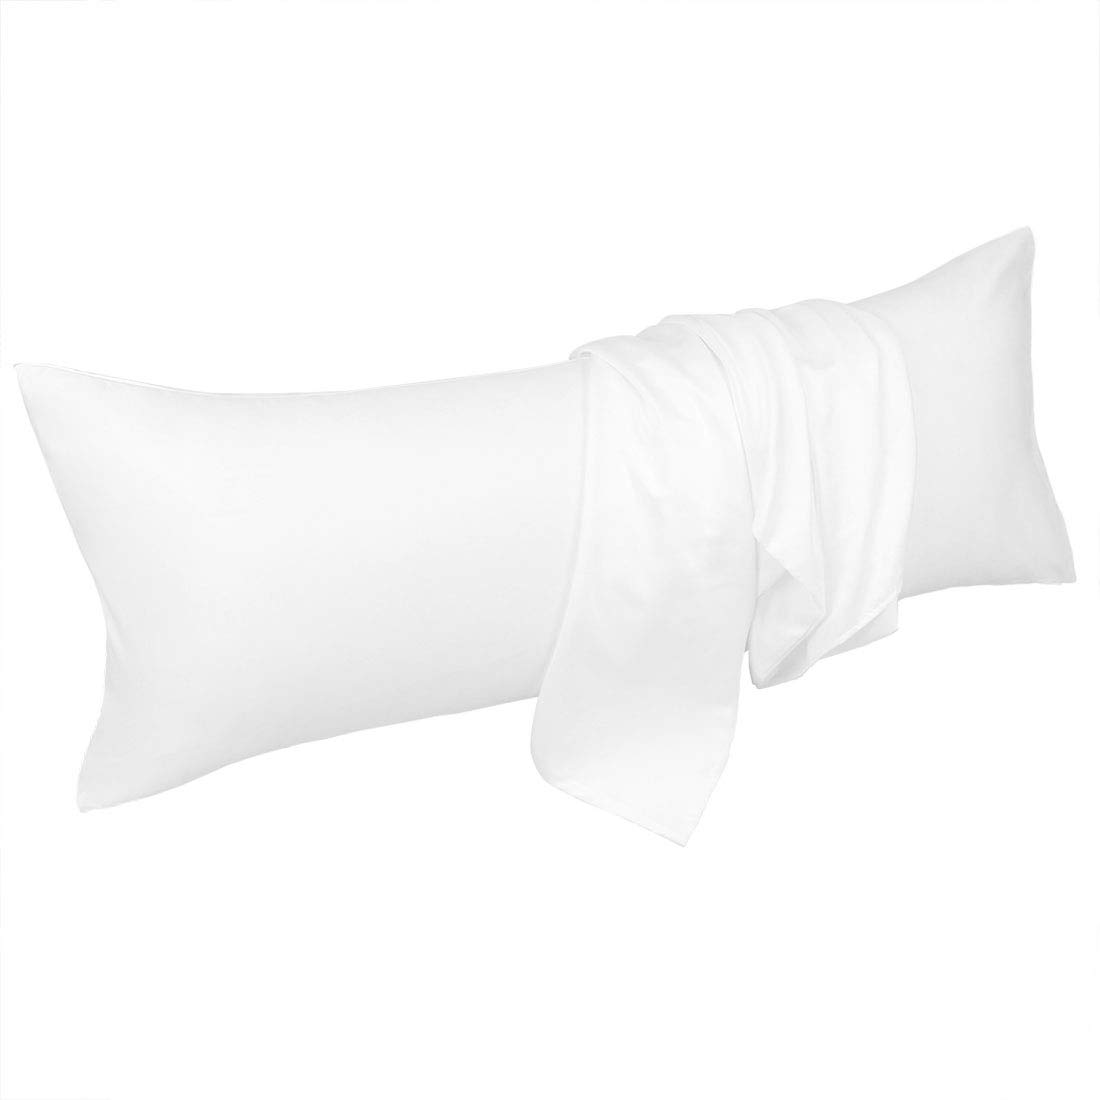 uxcell Body Pillow Cover 20x48 Inch White Silky Satin Body Pillowcases for Hair and Skin Luxury Cooling Anti Wrinkle Wash-Resistant